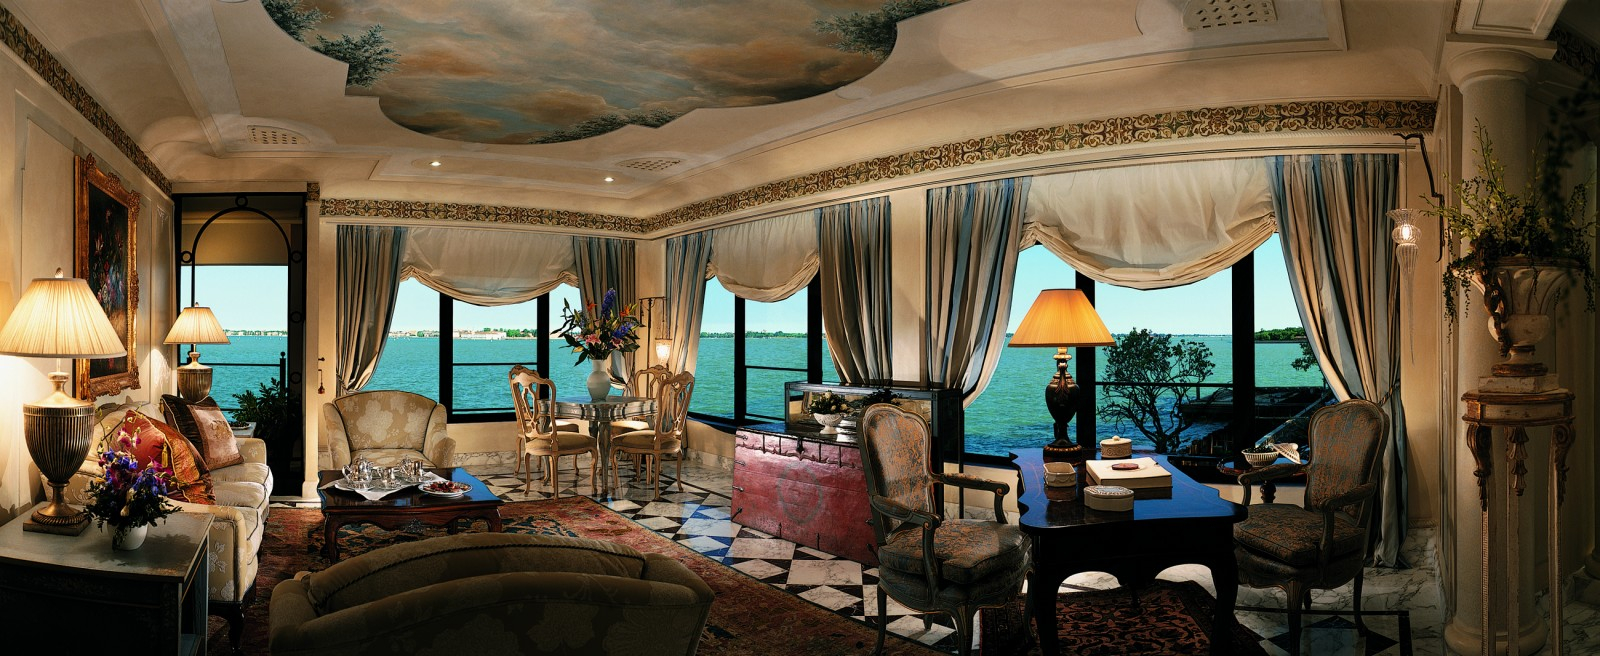 Hotel-Cipriani-The-extraordinary-view-of-the-Venetian-lagoon-from-the-sitting-room-of-the-exclusive-Palladio-Suite-1600x656